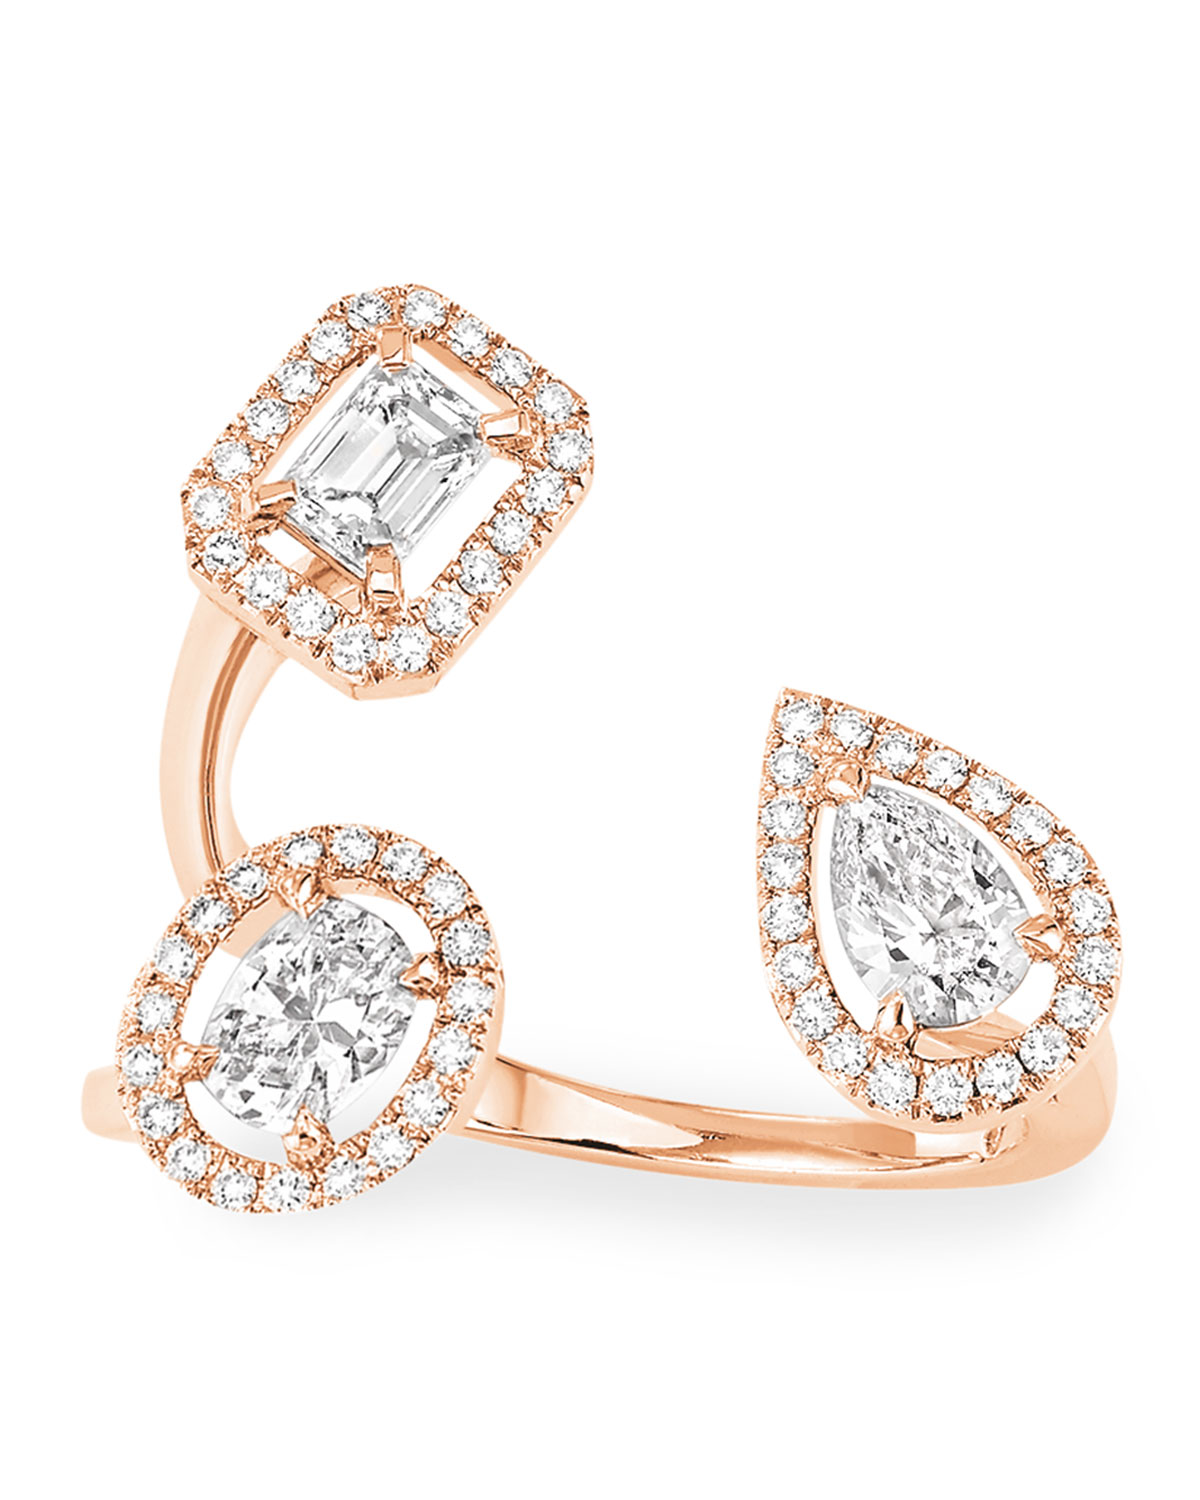 My Twin Trilogy Ring in 18k Rose Gold and Diamonds